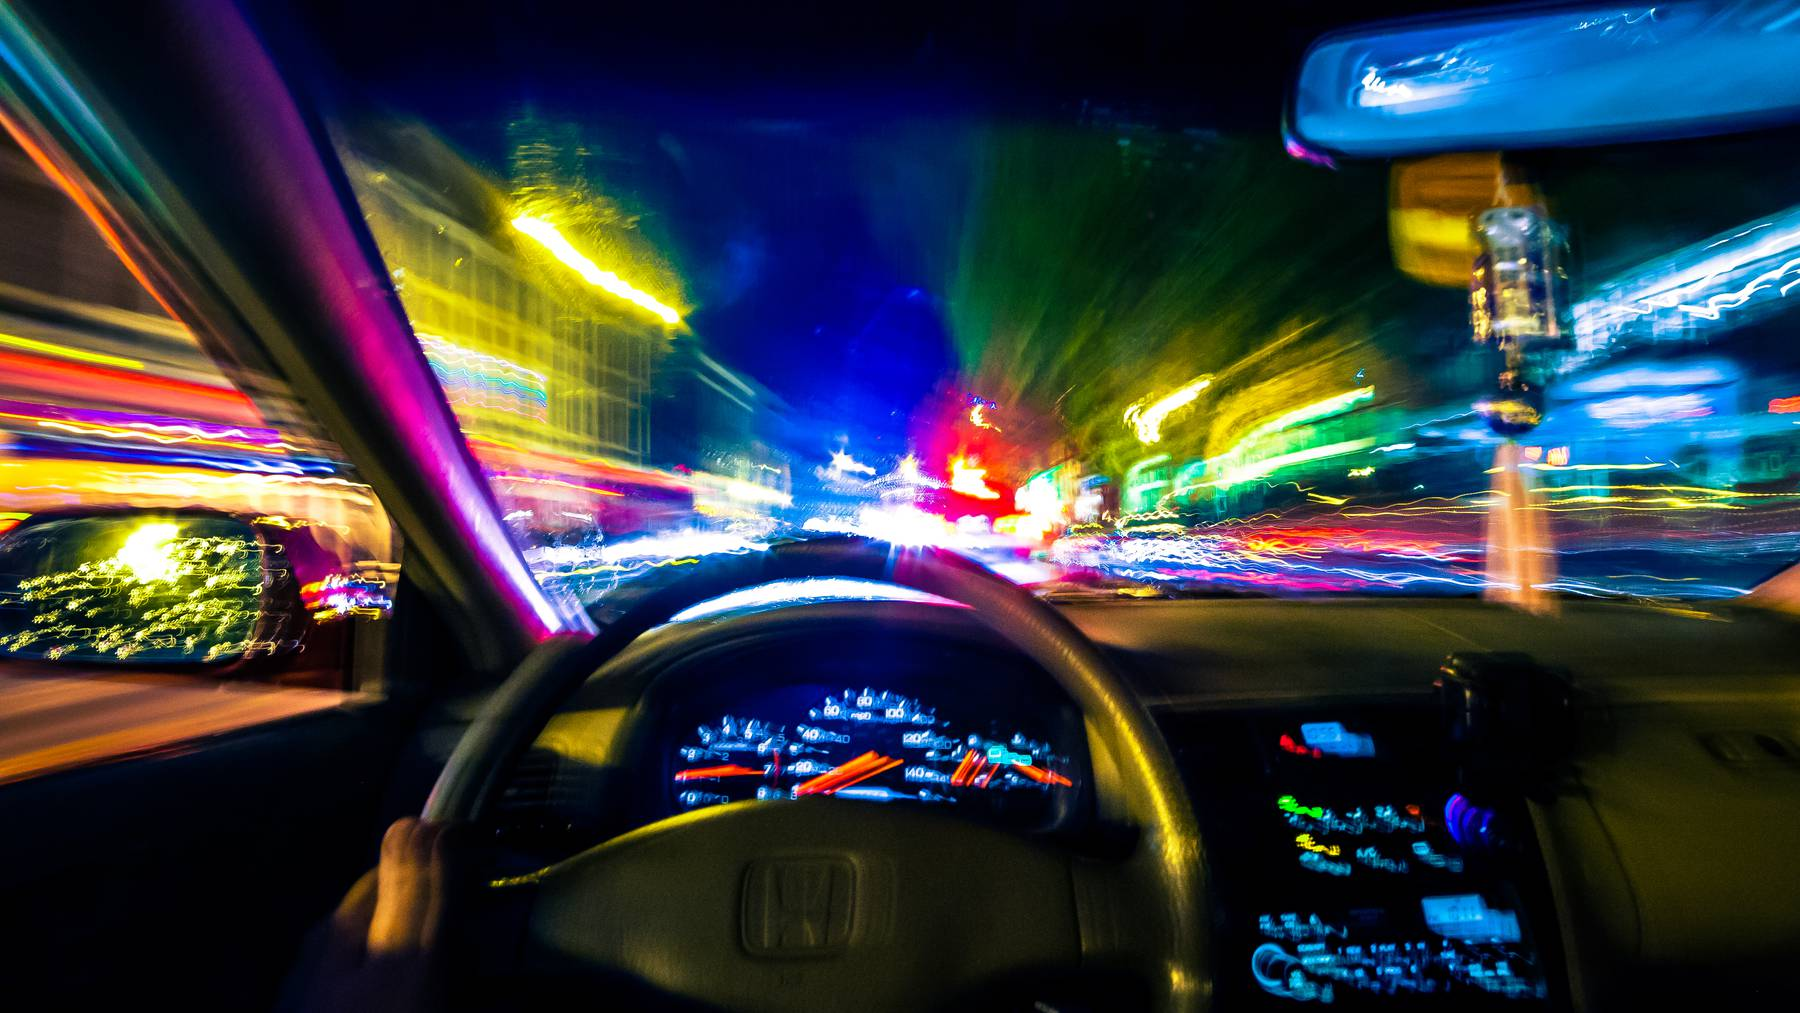 Long exposure inside the car, resulting in a simulated effect of drunk driving from the first-person's perspective. // Betrunkener Autofahrer // Blaufahrer